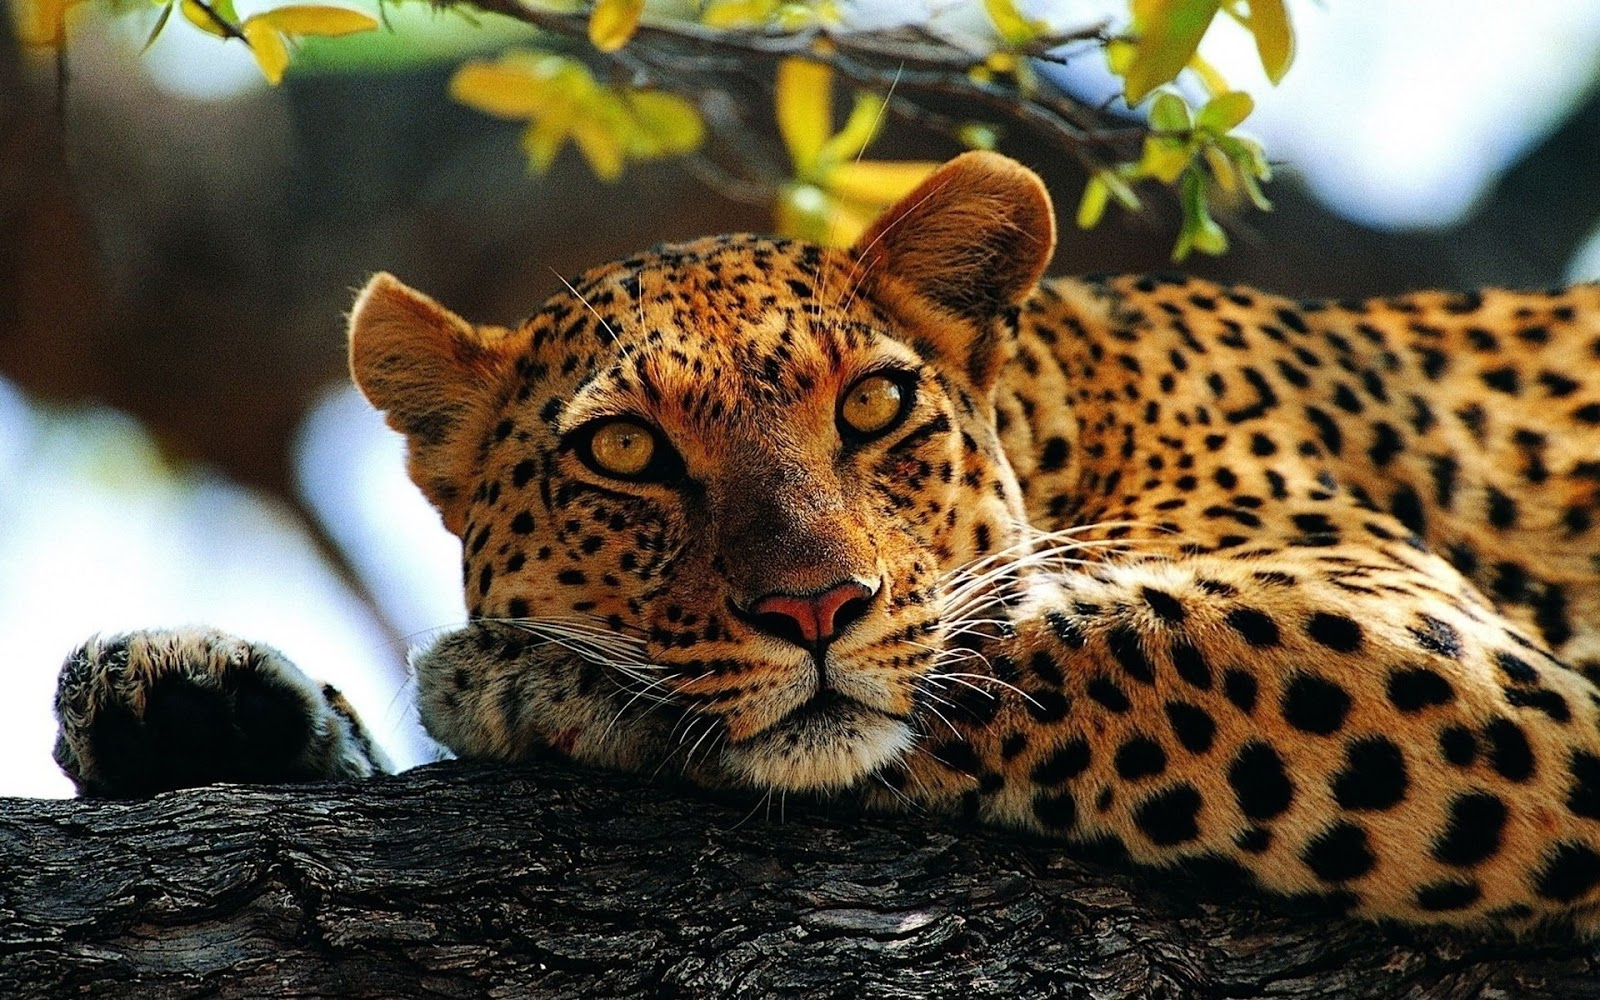 Cool Animal Wallpapers Hd: All About Animal Wildlife: Cheetah Cool HD Wallpapers 2012